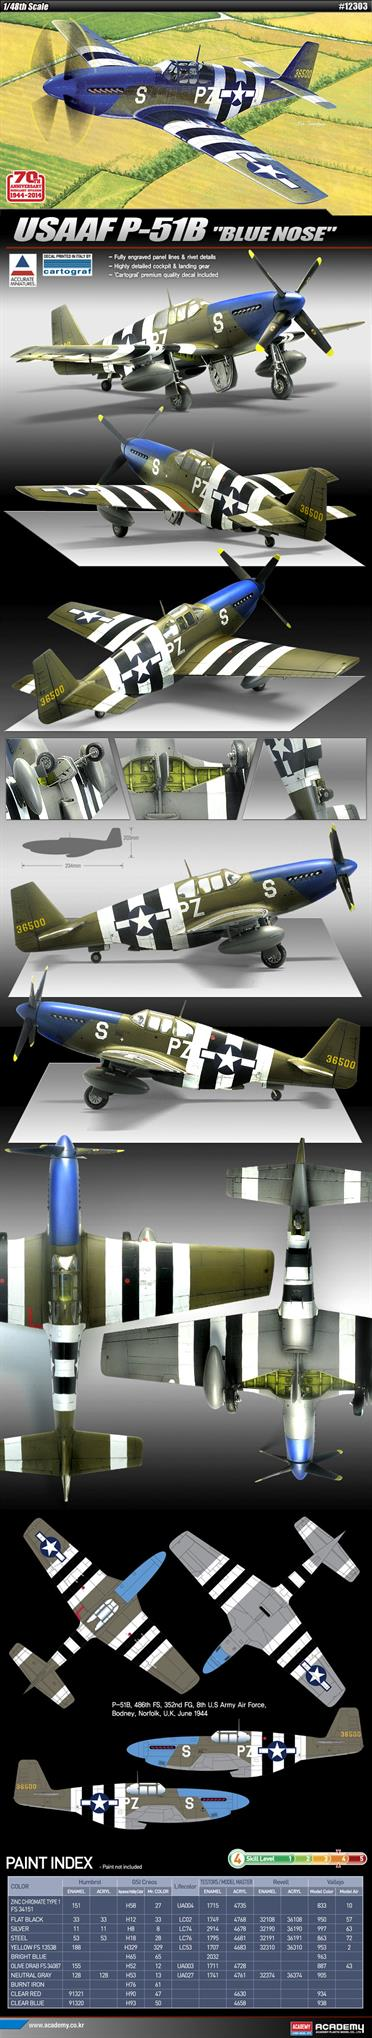 Academy's 12303 1/48th Scale 70th Anniversary of Normandy Invasion Plastic Kit of a USAAF P-51B Blue Nose Fighter